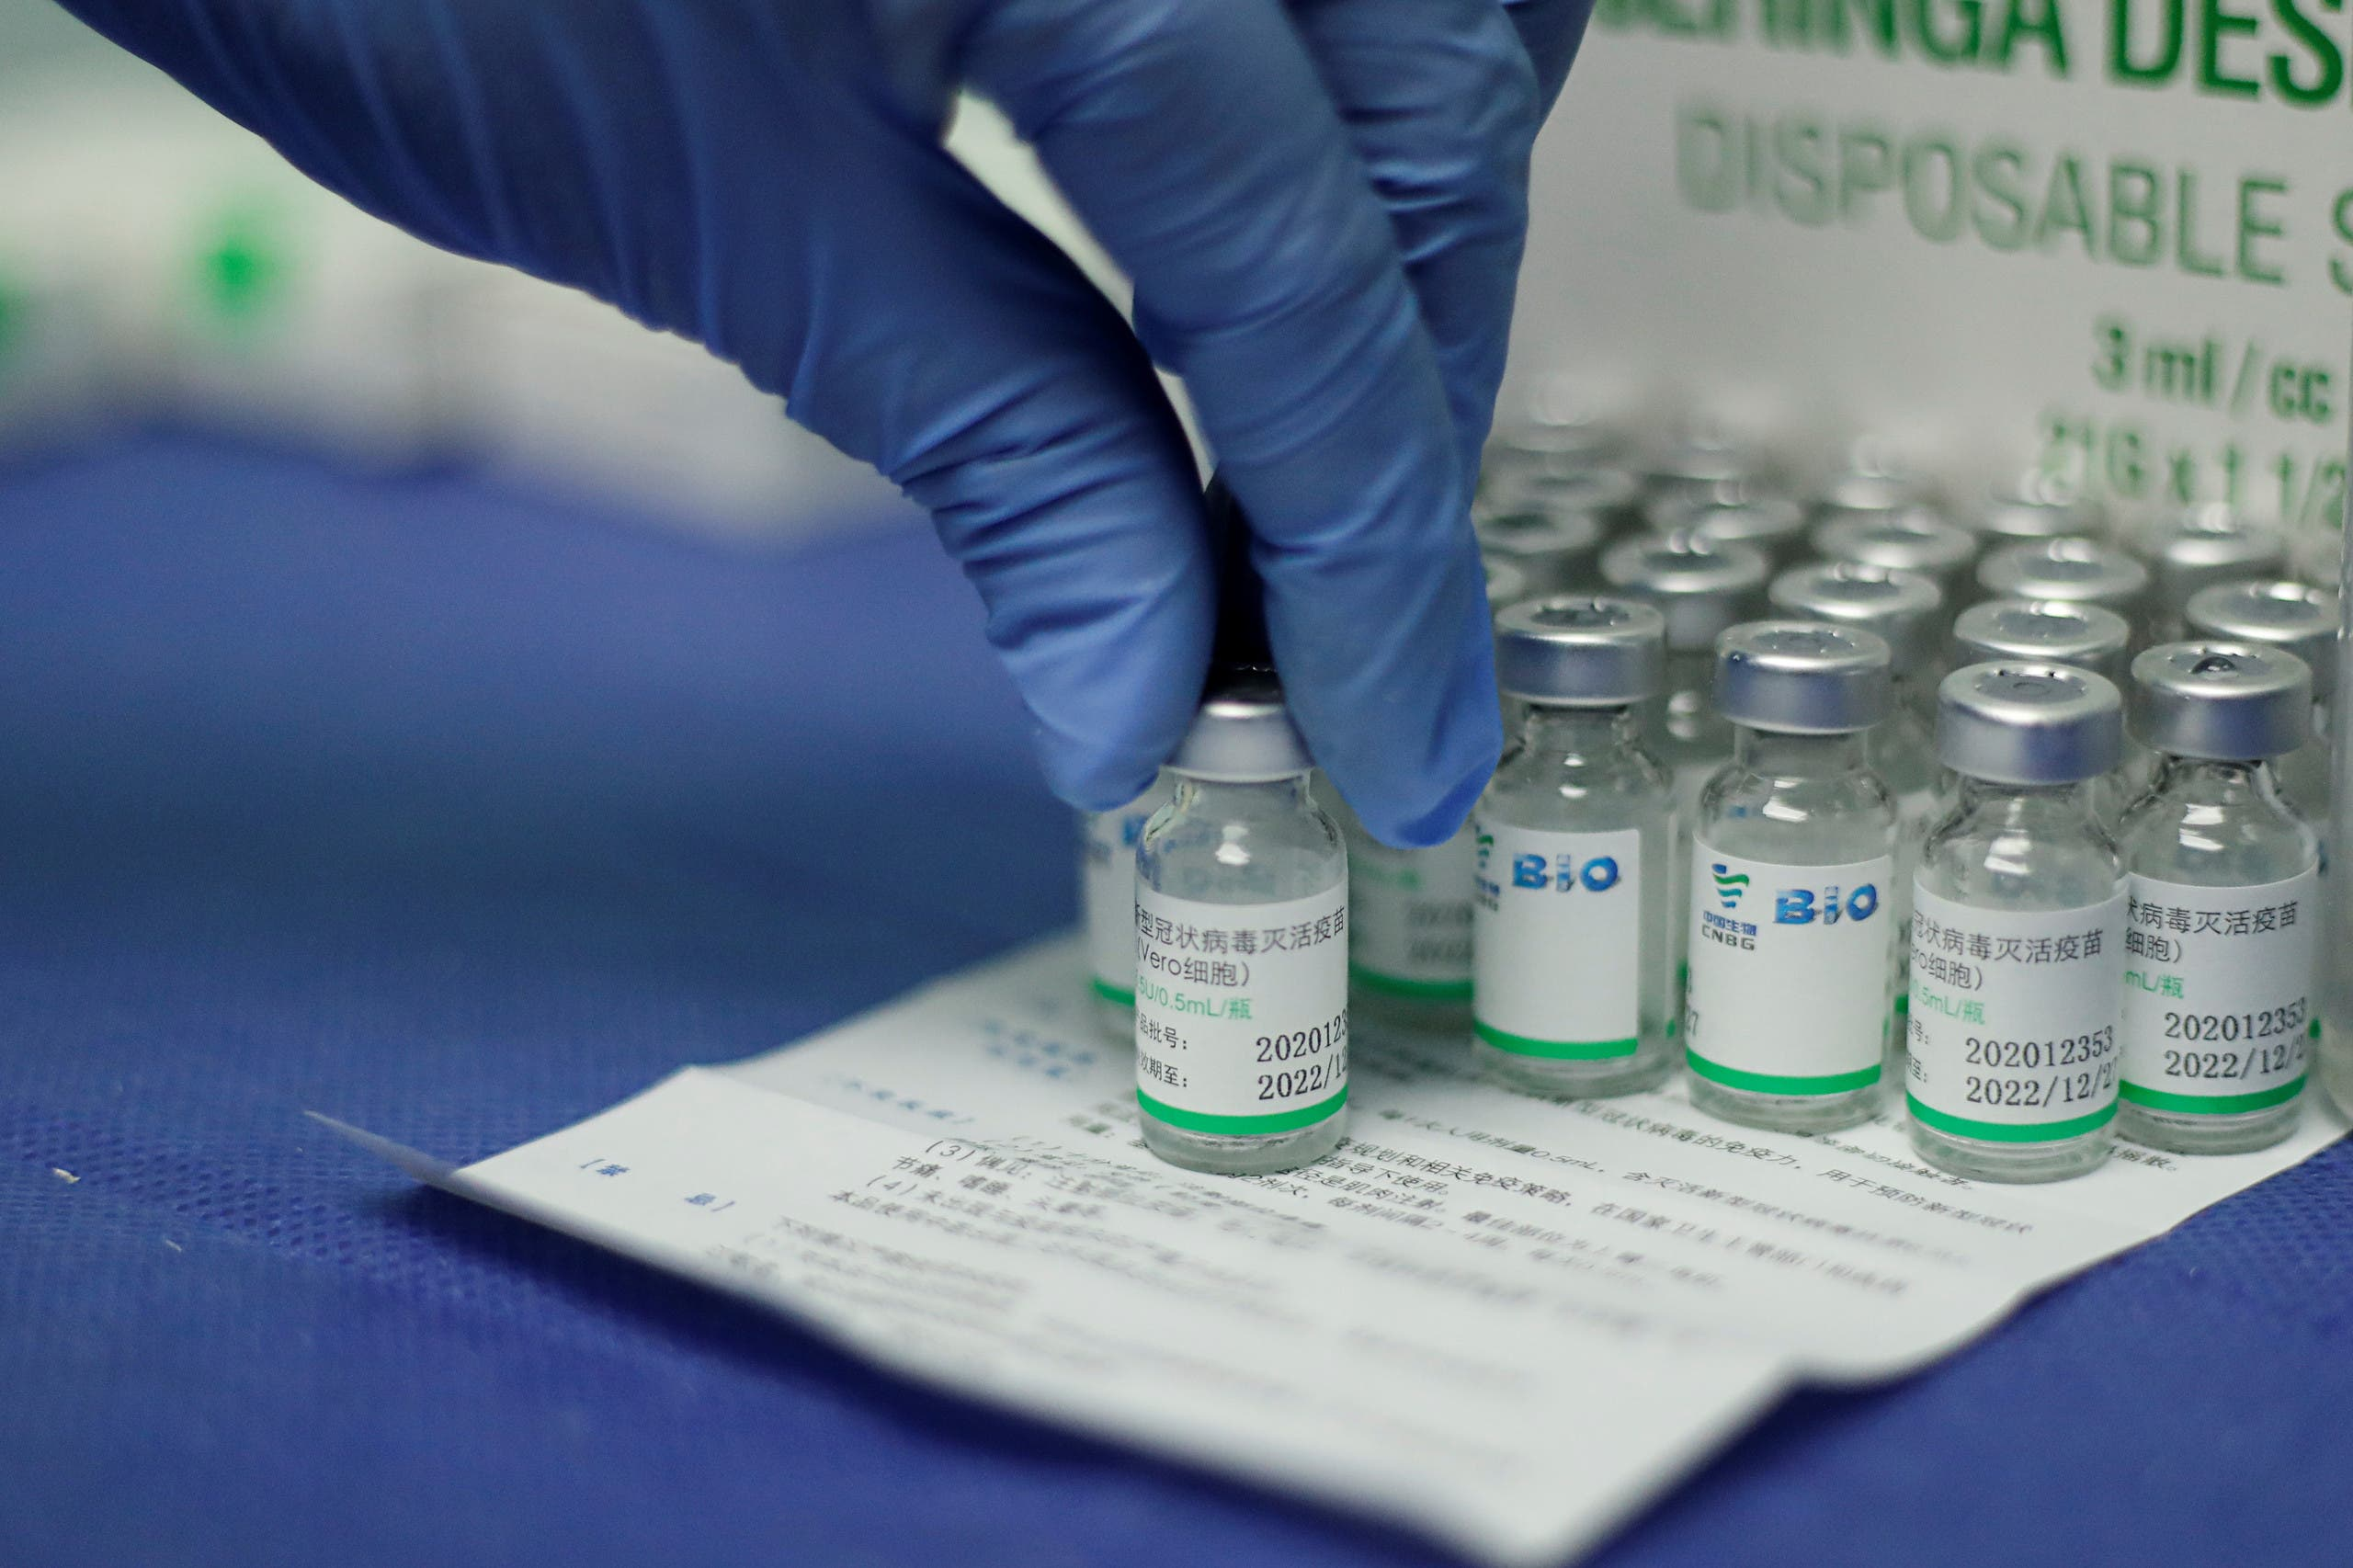 A nurse holds a vial of China's Sinopharm coronavirus disease (COVID-19) vaccine at a health center in Caracas, Venezuela March 7, 2021. (File photo: Reuters)